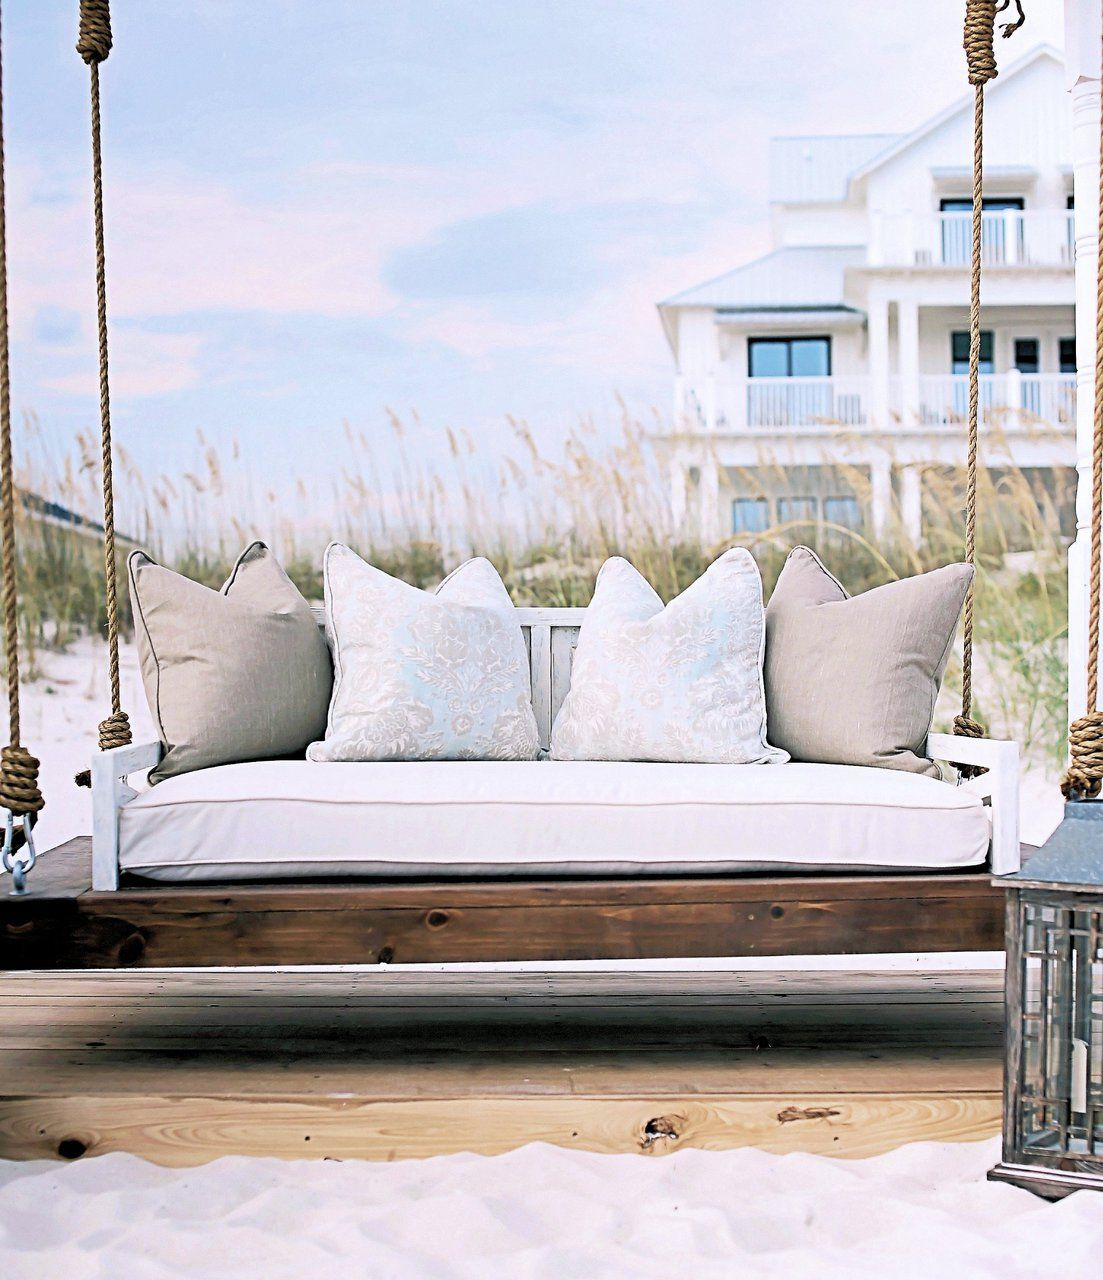 contemporary rustic modern furniture outdoor. Saltaire Rustic Daybed Porch Swing   BOXHILL Contemporary Modern Furniture Outdoor R